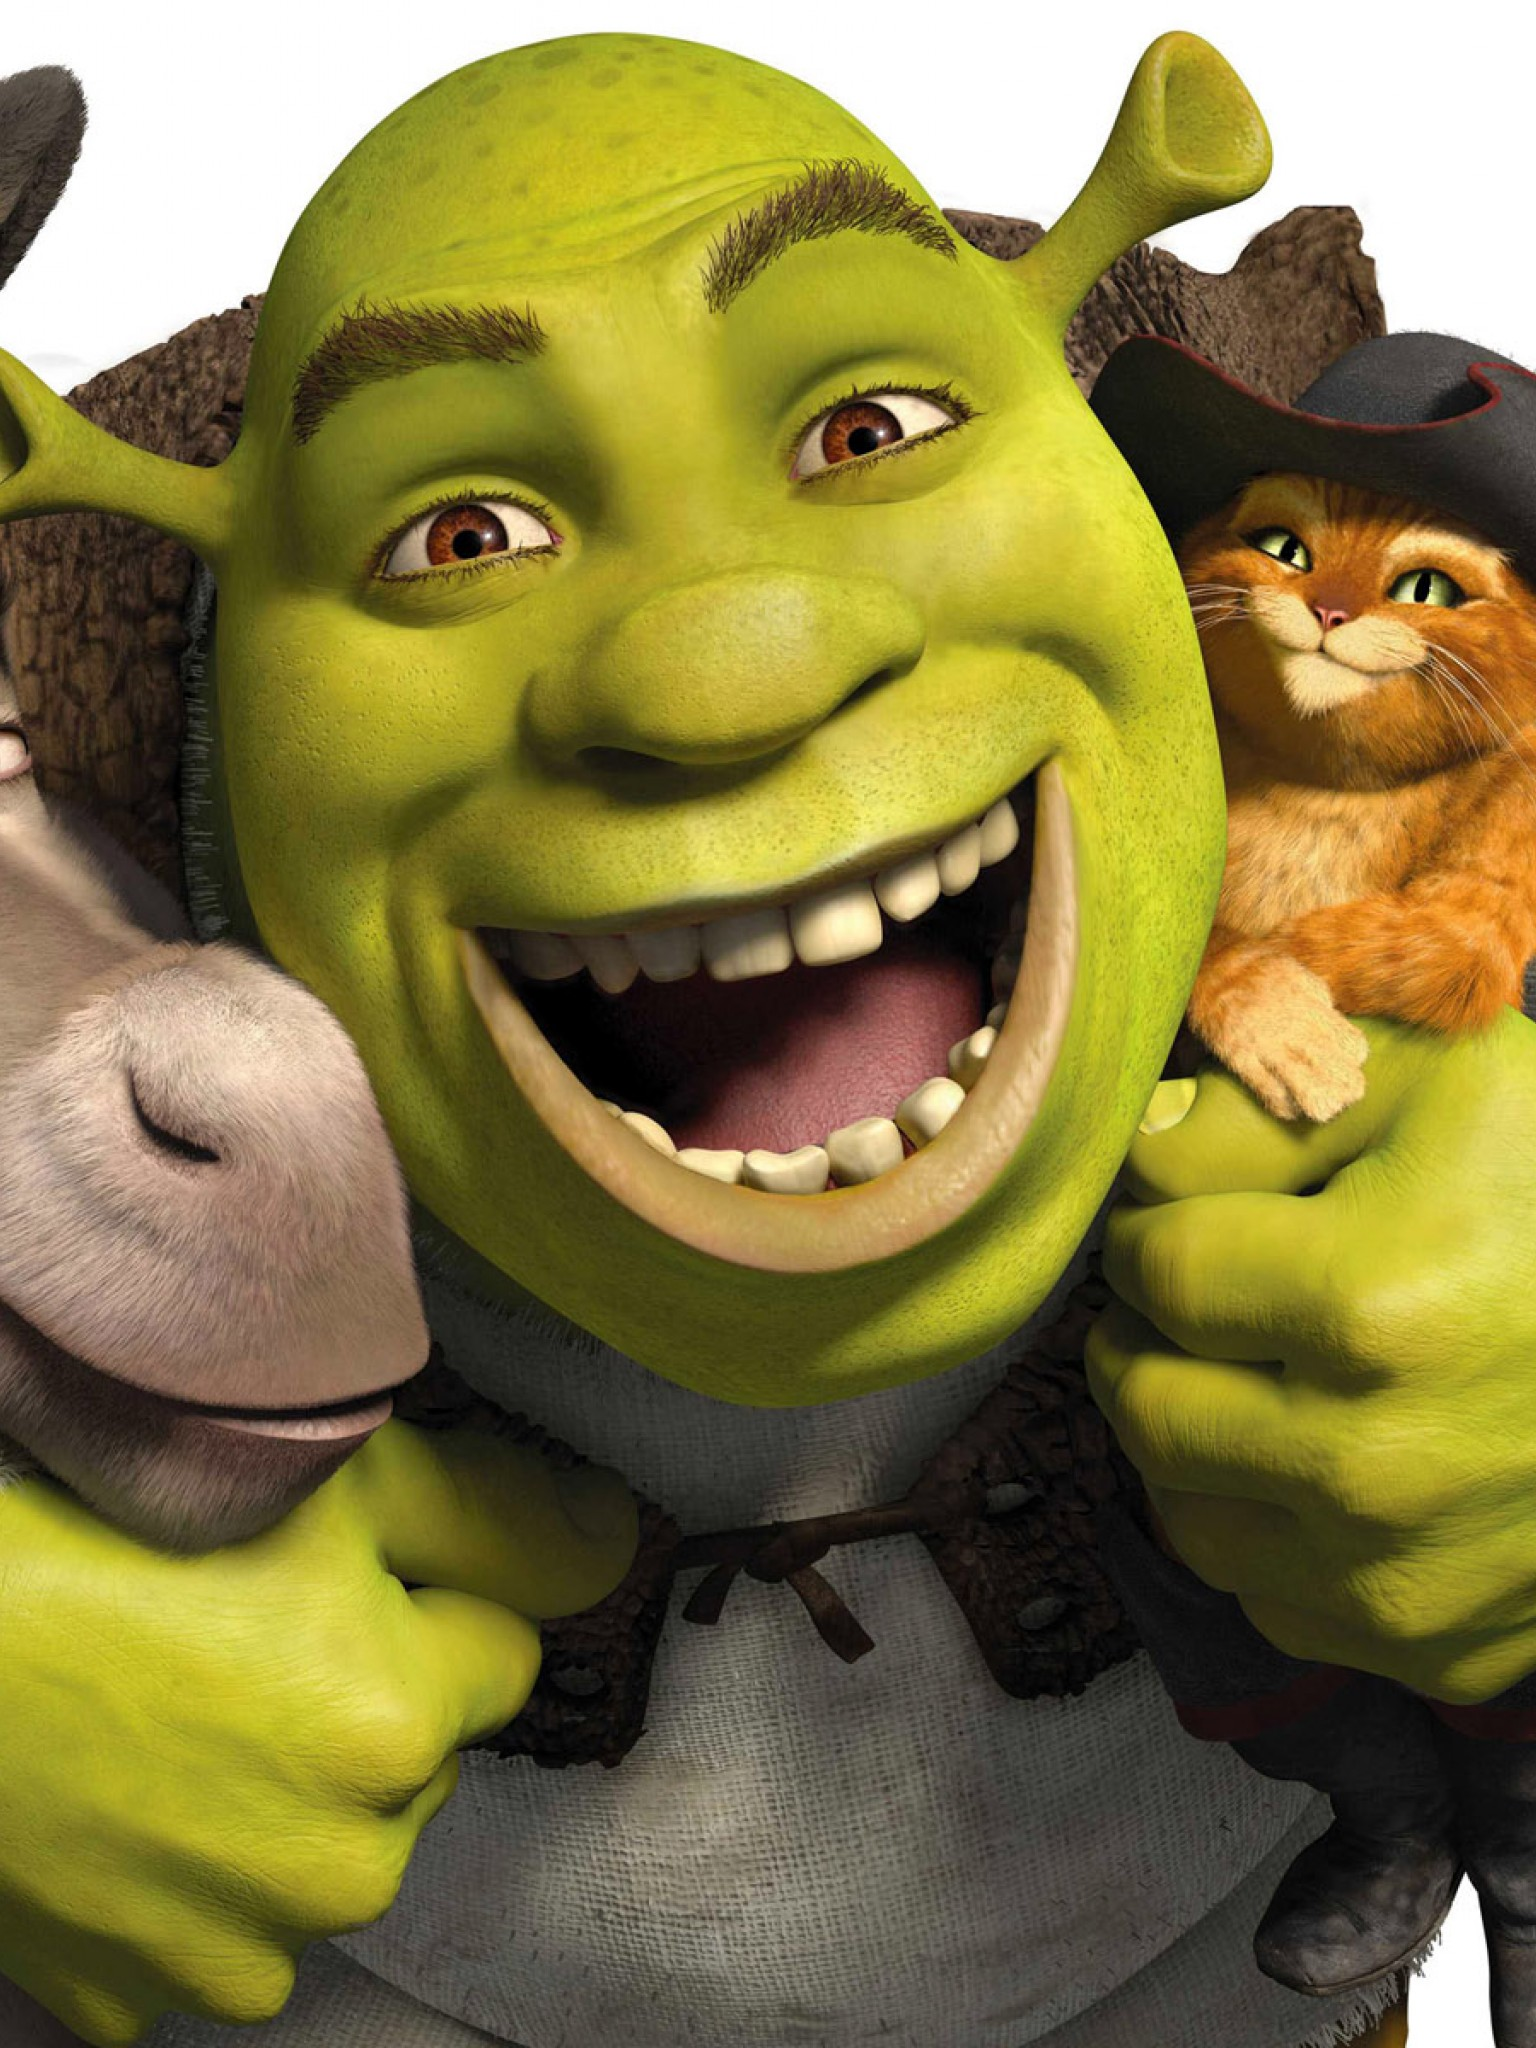 Donkey Shrek Puss In Boots Wallpaper For Desktop And Mobiles